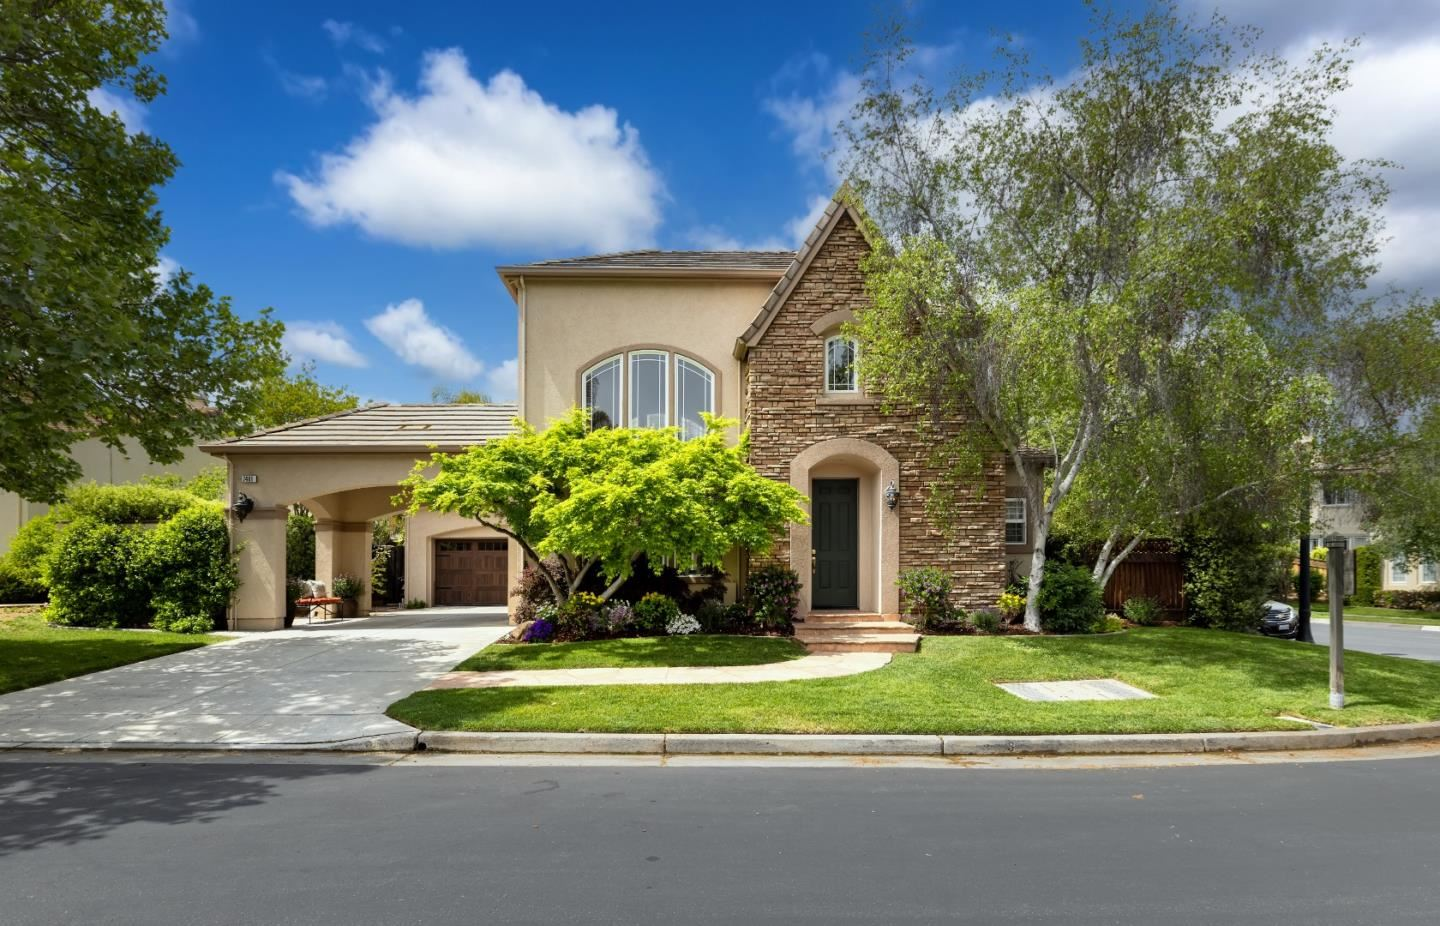 Photo for 7481 Carnoustie Court, GILROY, CA 95020 (MLS # ML81840632)